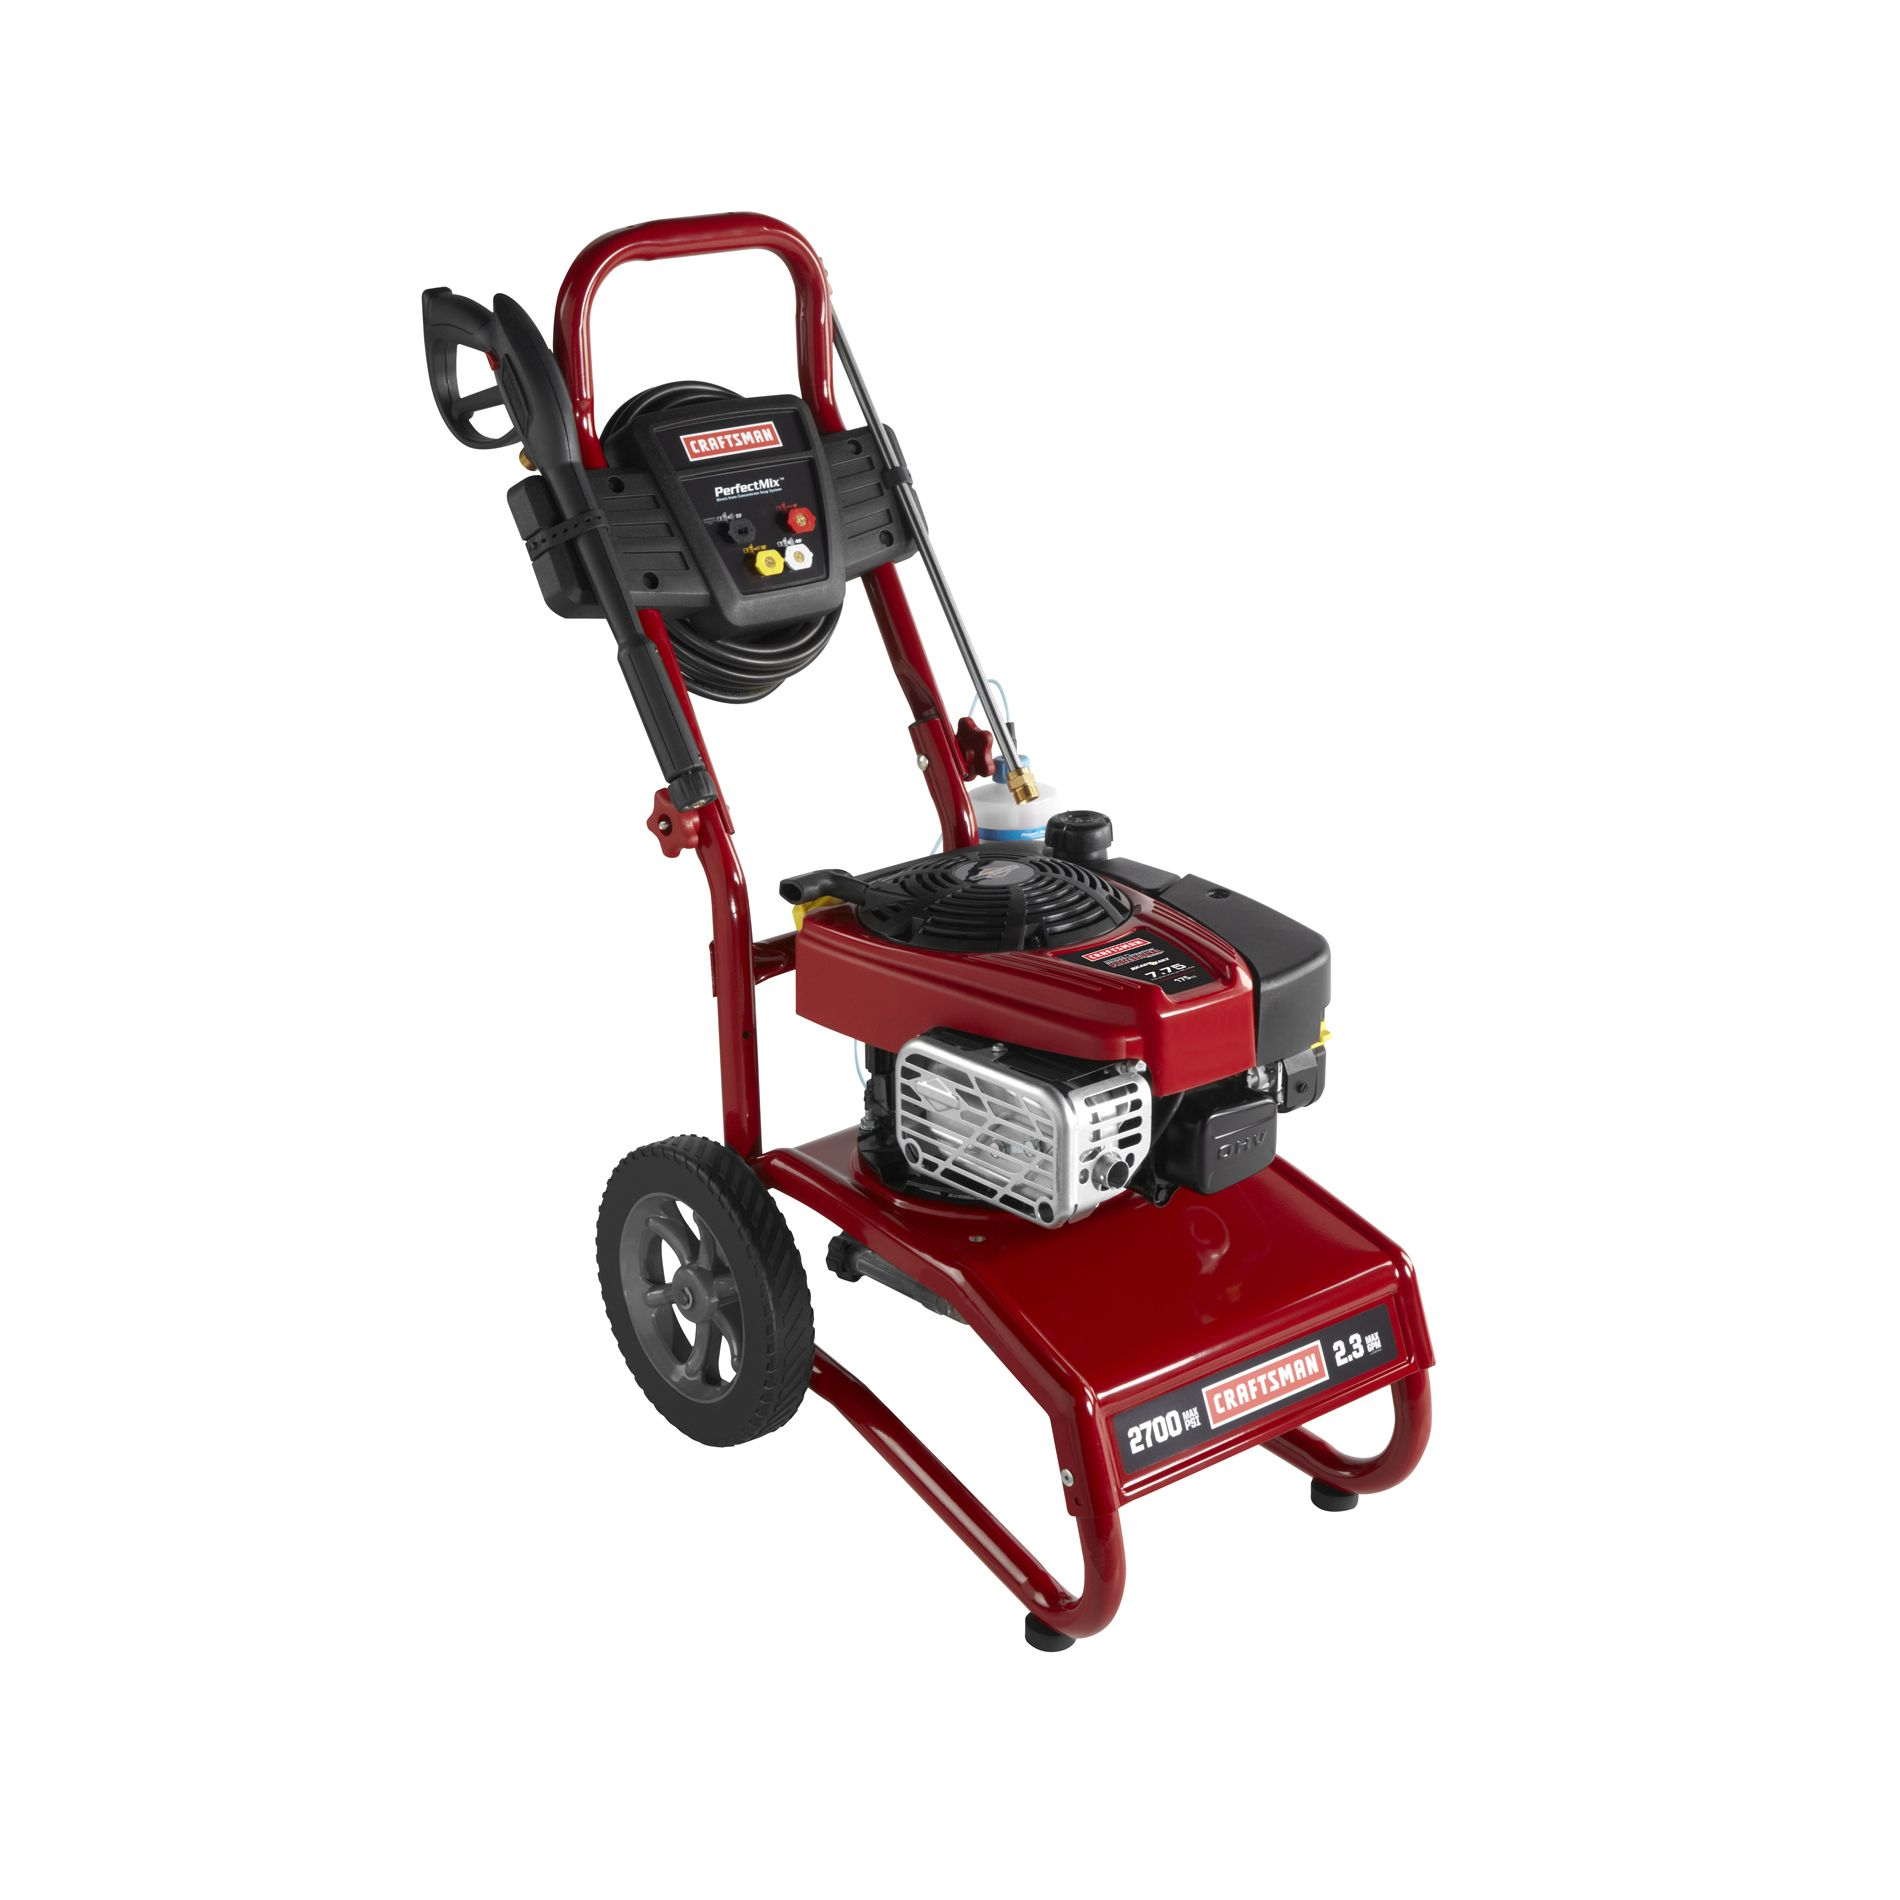 Pressure-Washer-2700-PSI-2-3-GPM-Briggs-Stratton-Powered-Non-CA